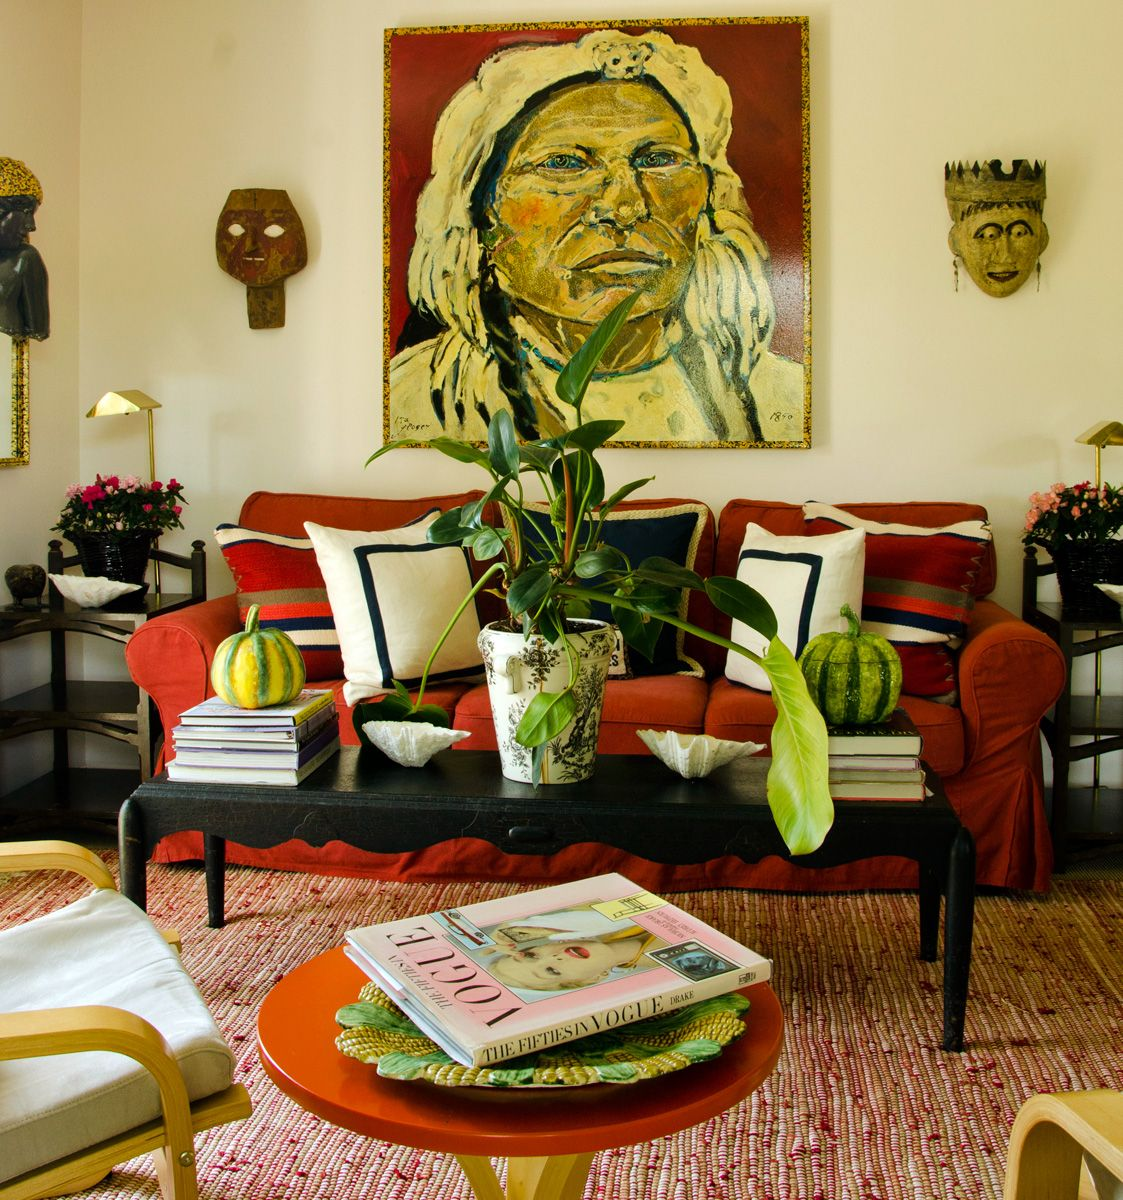 decorating style indian for interior low themed native on budget decor homes india home room diy decoration inspired cost american goa themes ideas co natural furniture items beds blog design living bedroom exotic designs